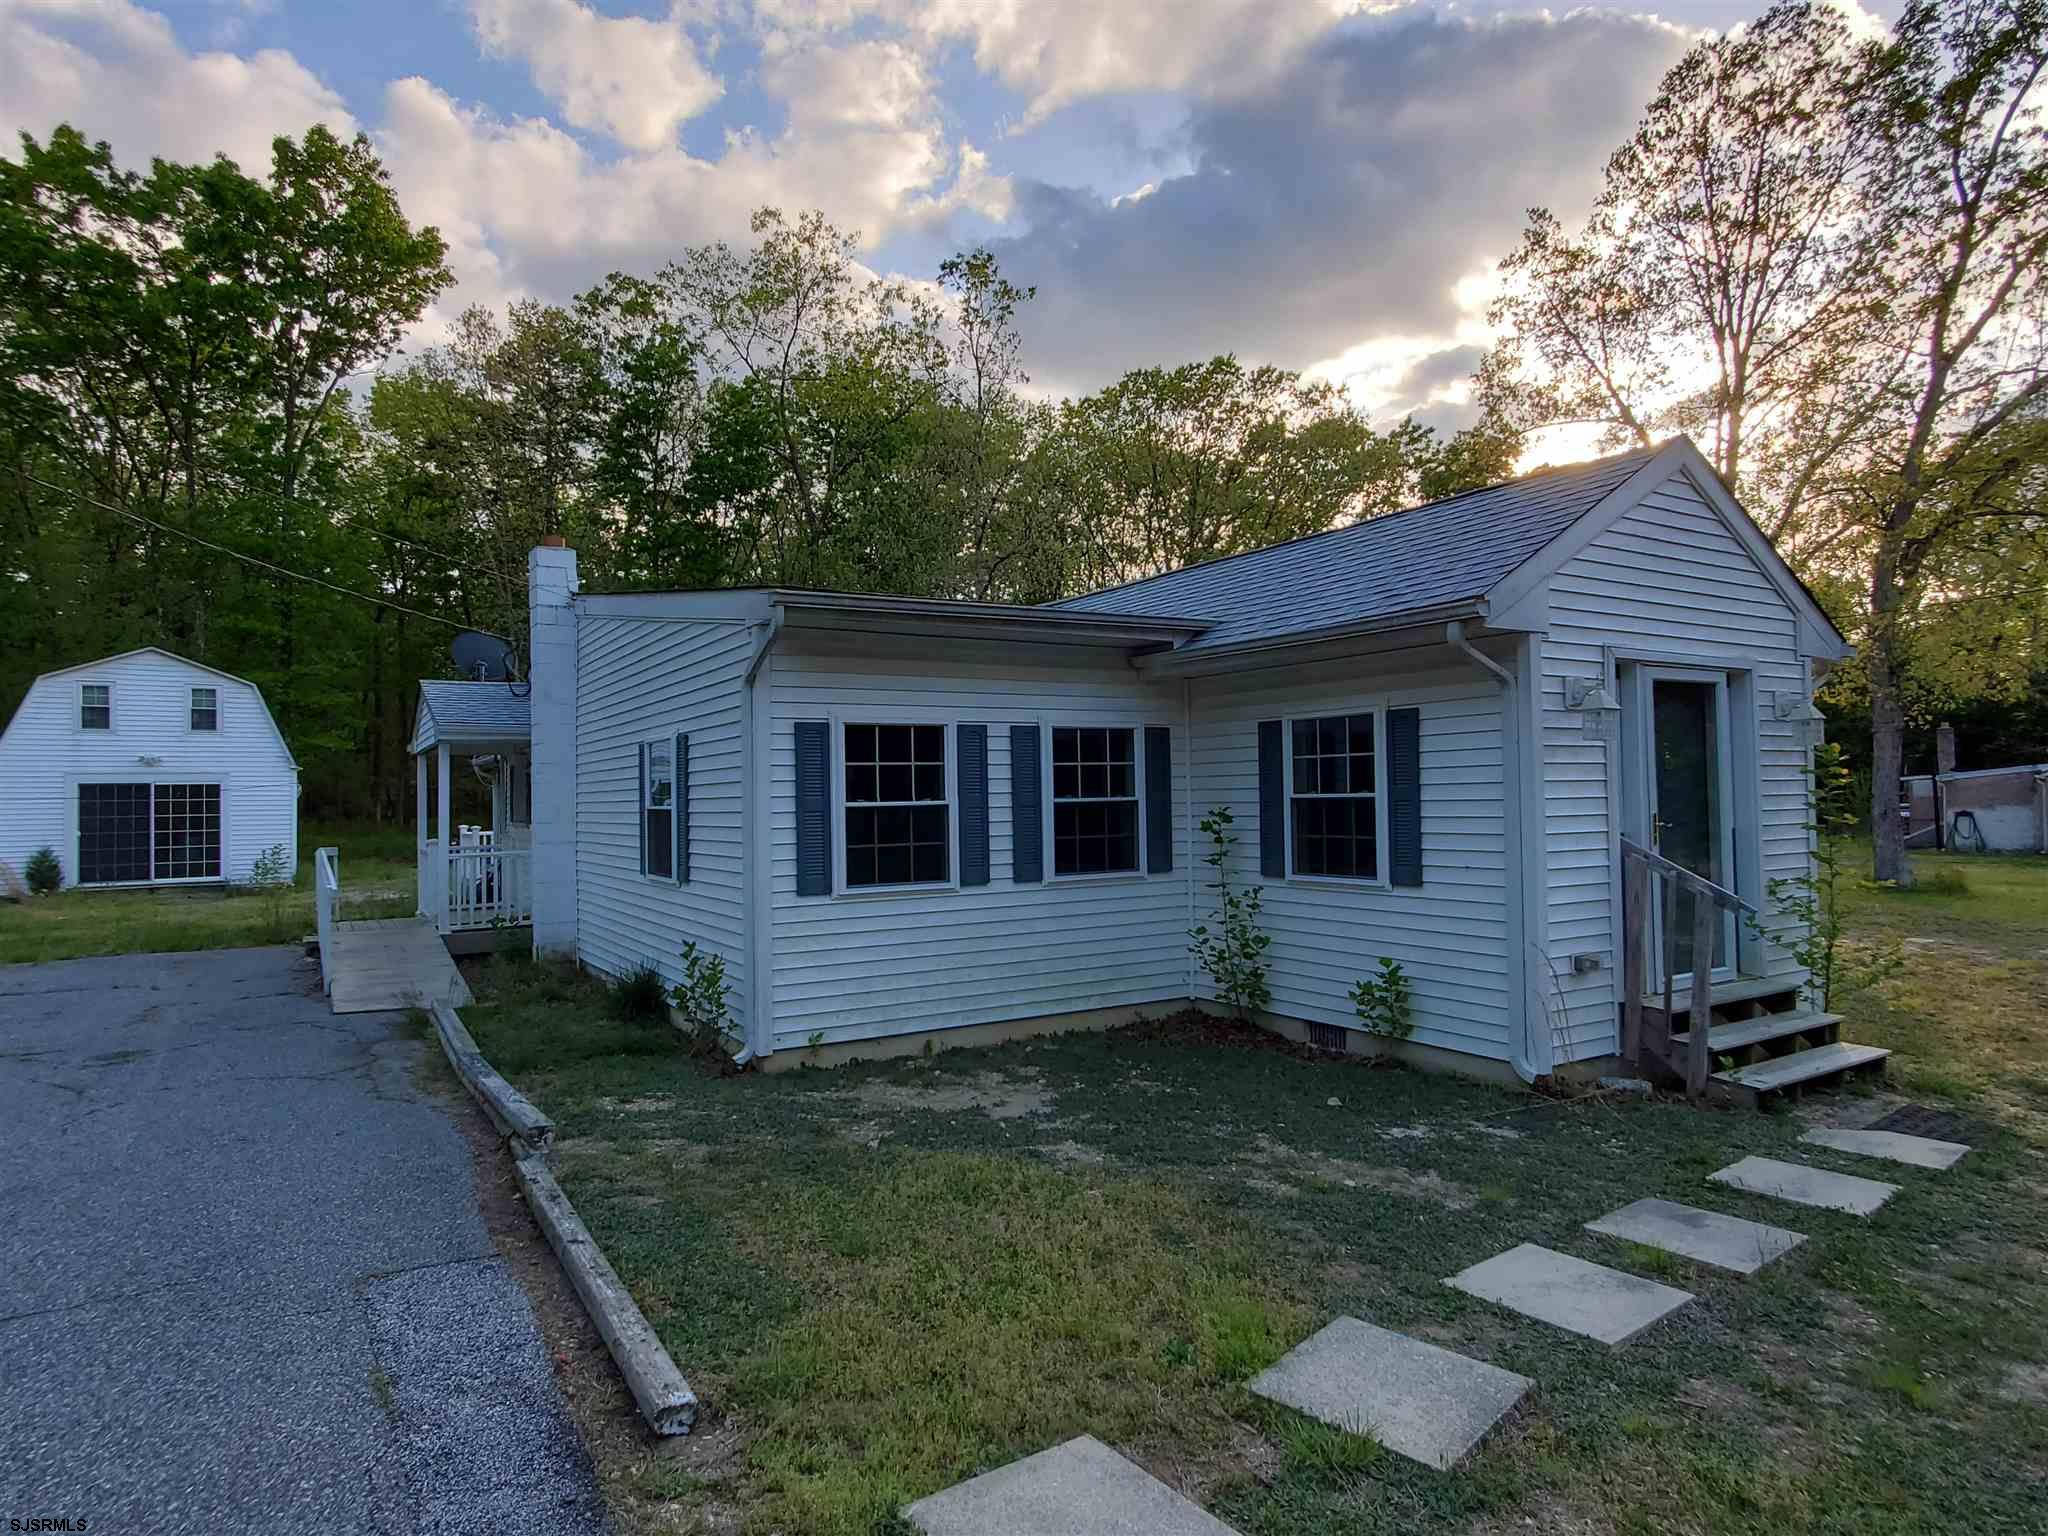 Located among pristine forests but still centrally located to the Black Horse Pike, Hammonton, Vinel